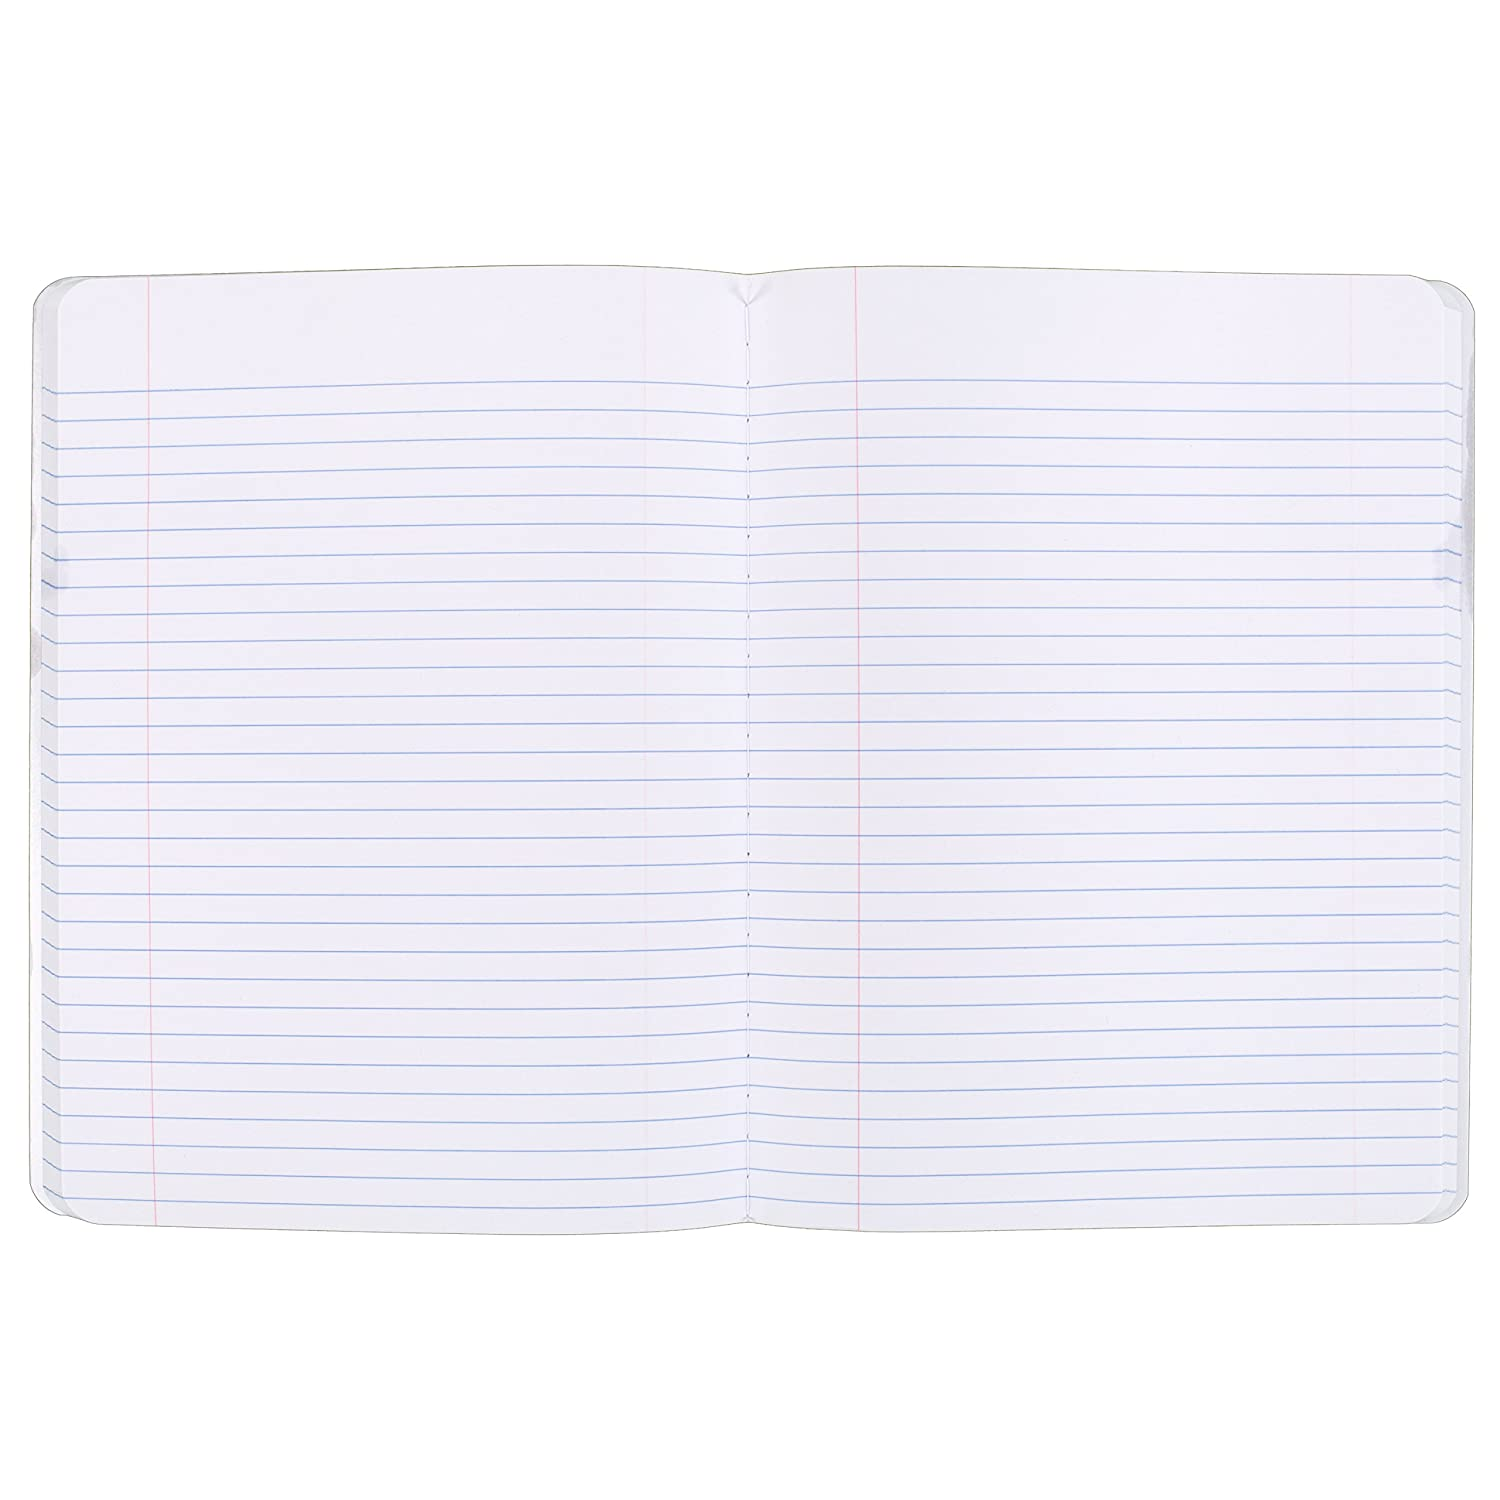 com mead composition book notebook 100 sheets college  com mead composition book notebook 100 sheets college ruled 9 75 x 7 5 inch 9932 composition notebooks office products